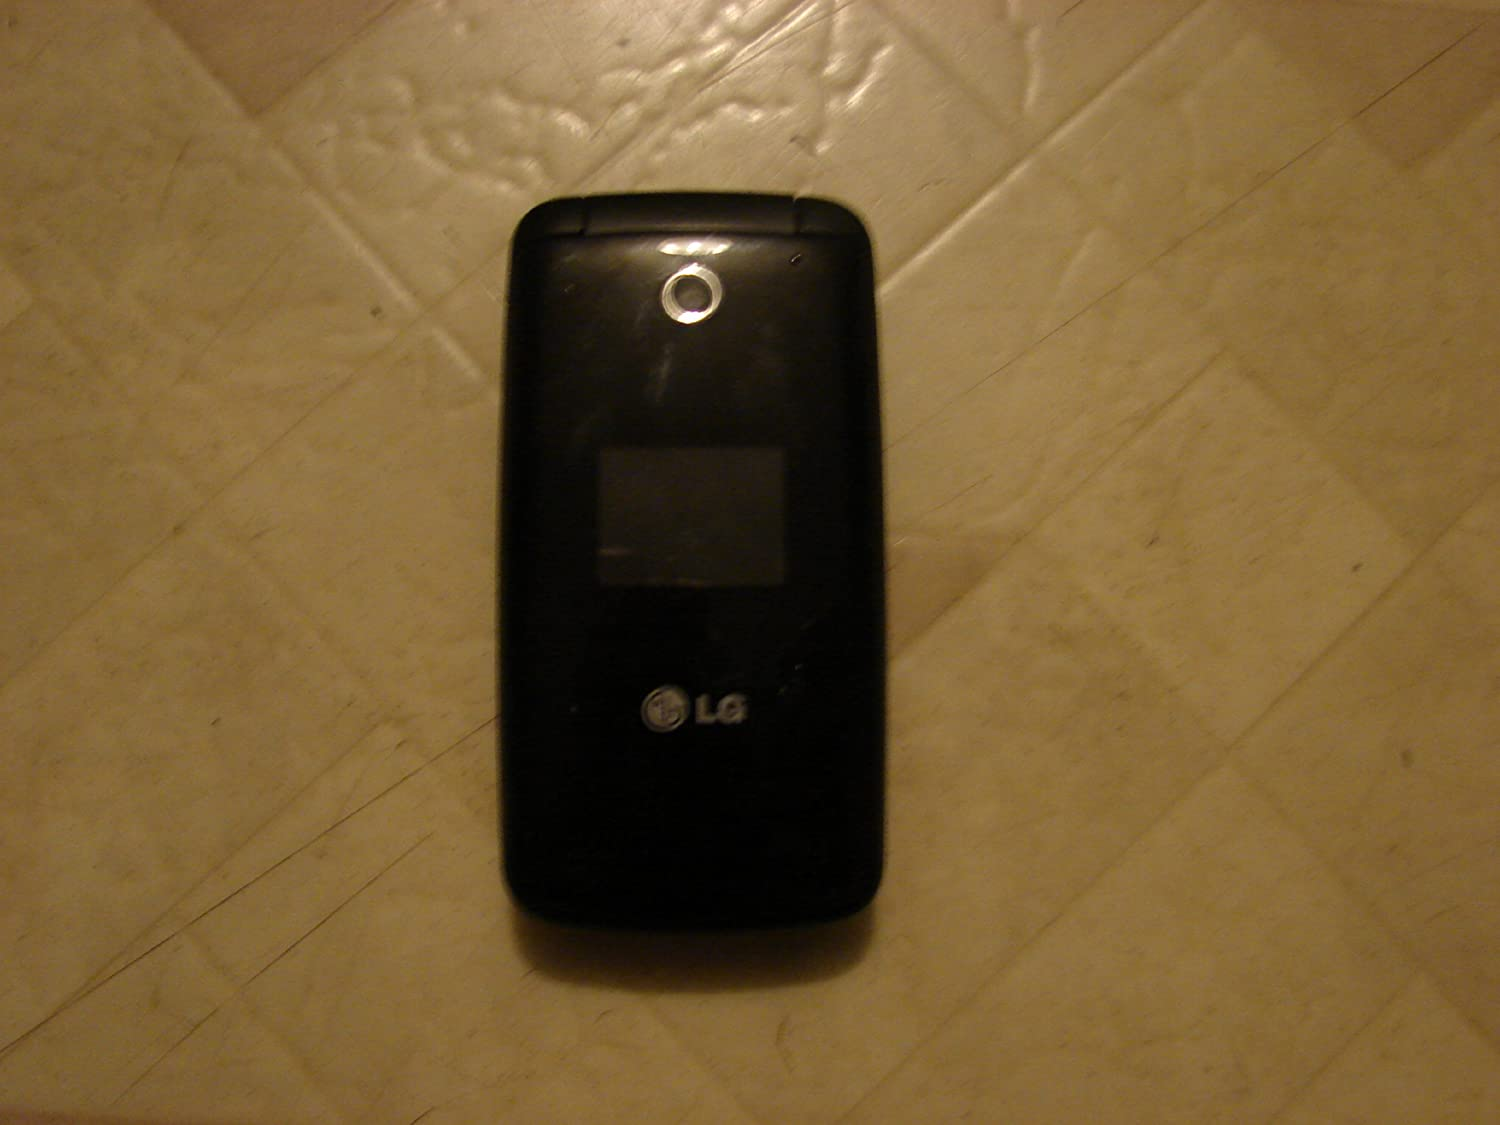 LG 420G Prepaid Cell Phone Tracfone